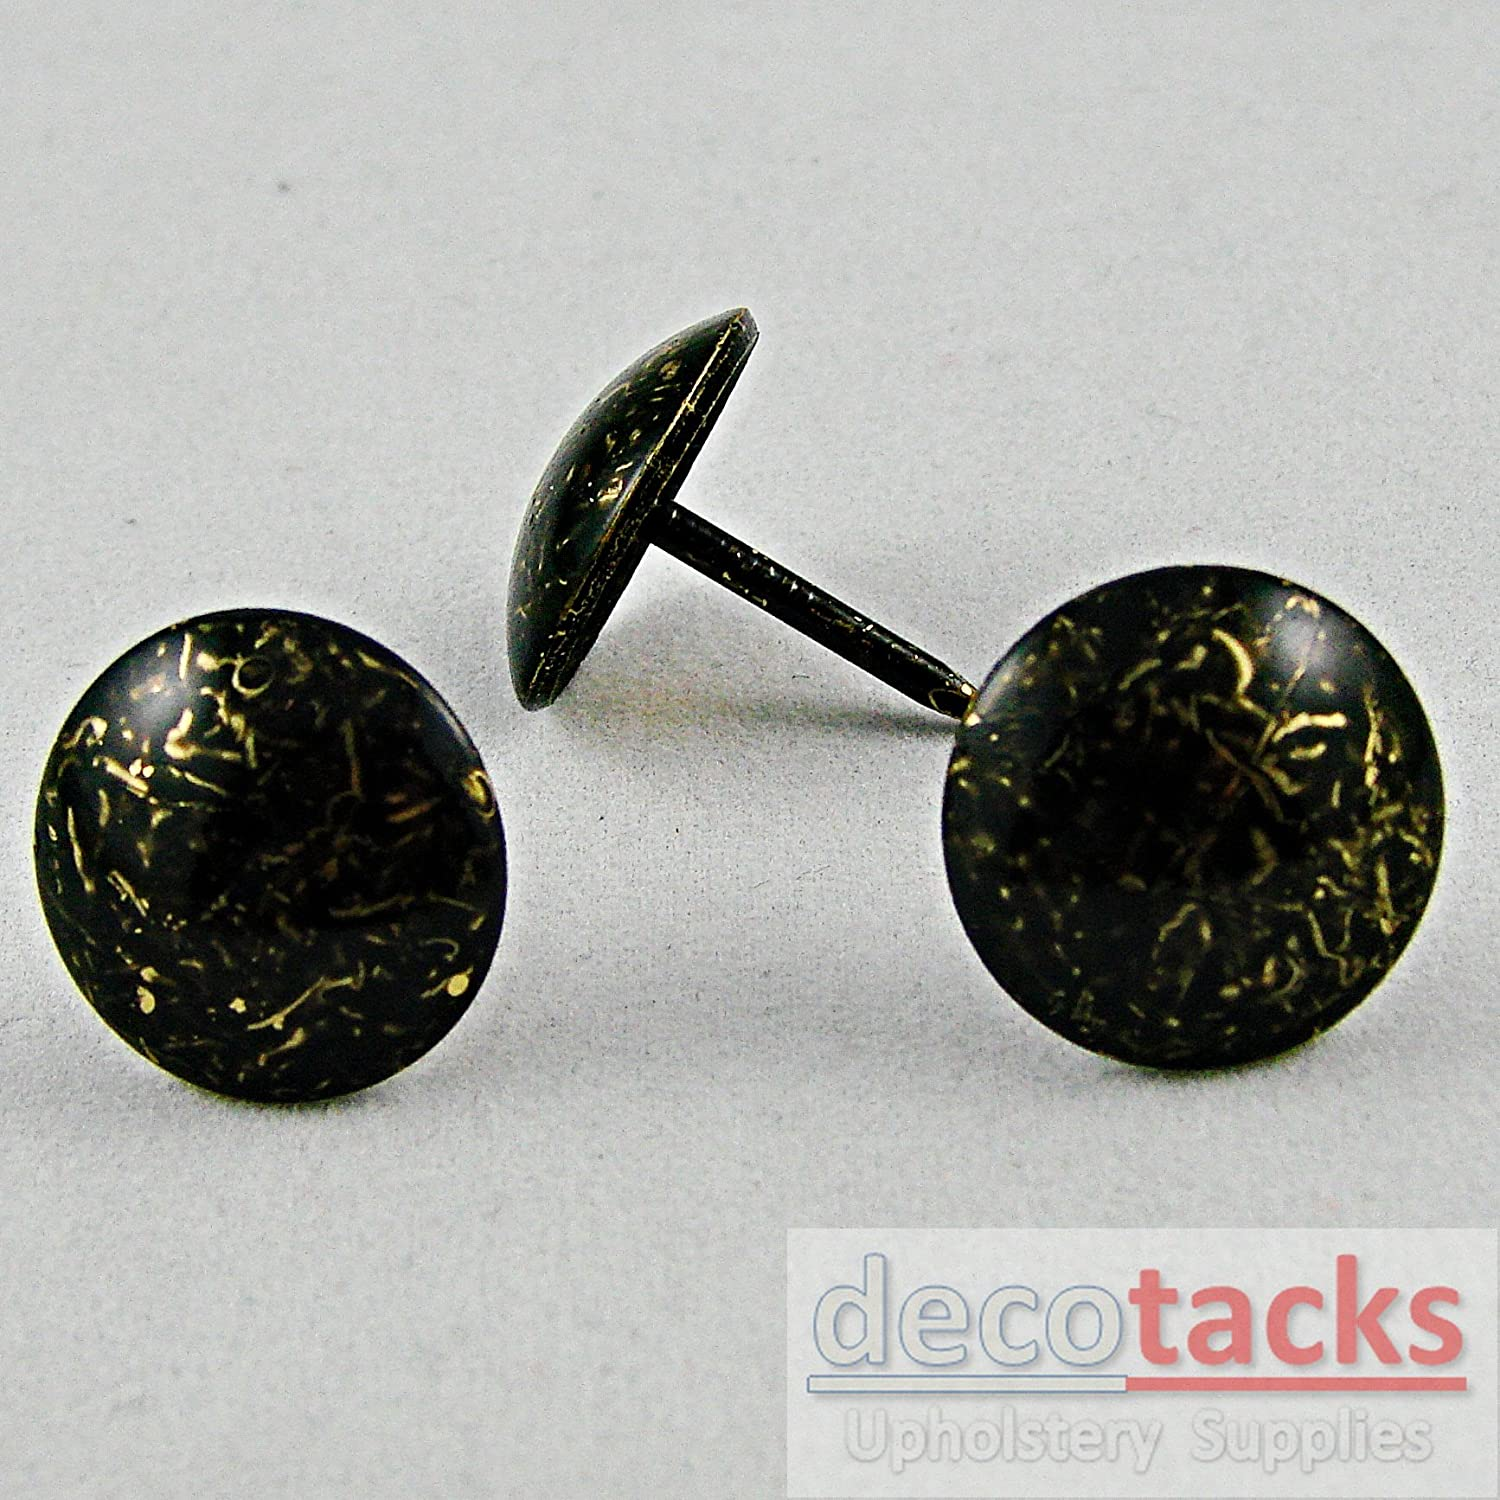 Decotacks Upholstery Nails Tacks 3 10,2 cm 100 pcs [Antique Z Finish]